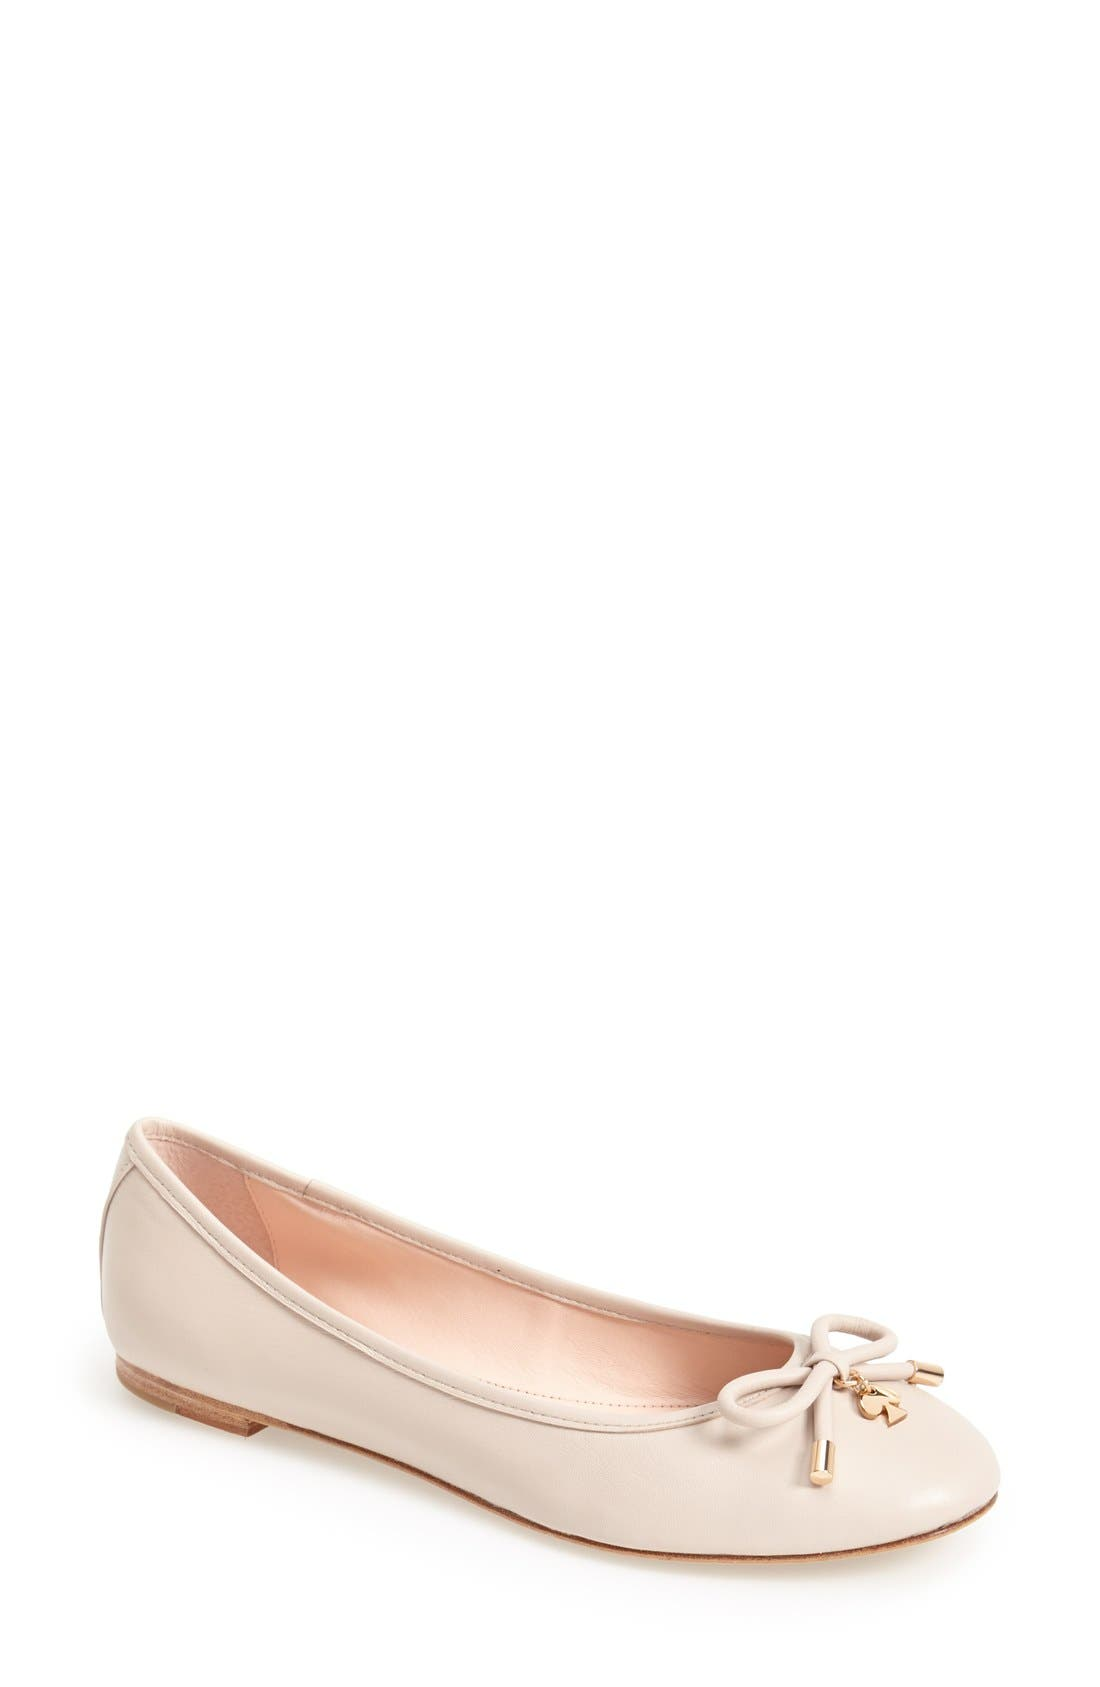 kate spade new york 'willa' skimmer flat (Women)